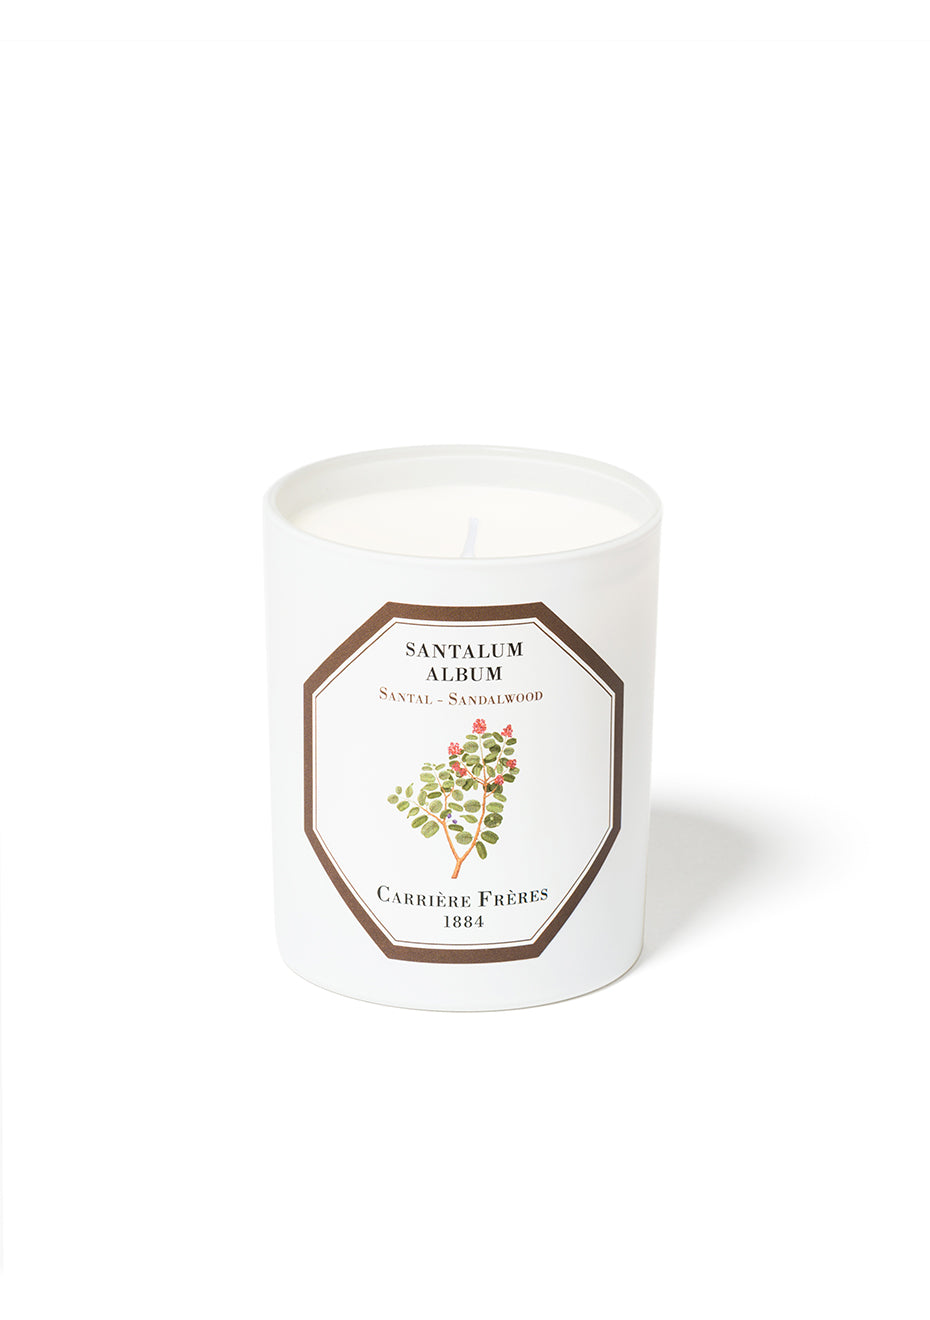 Sandalwood Scented Candle - Santalum Album